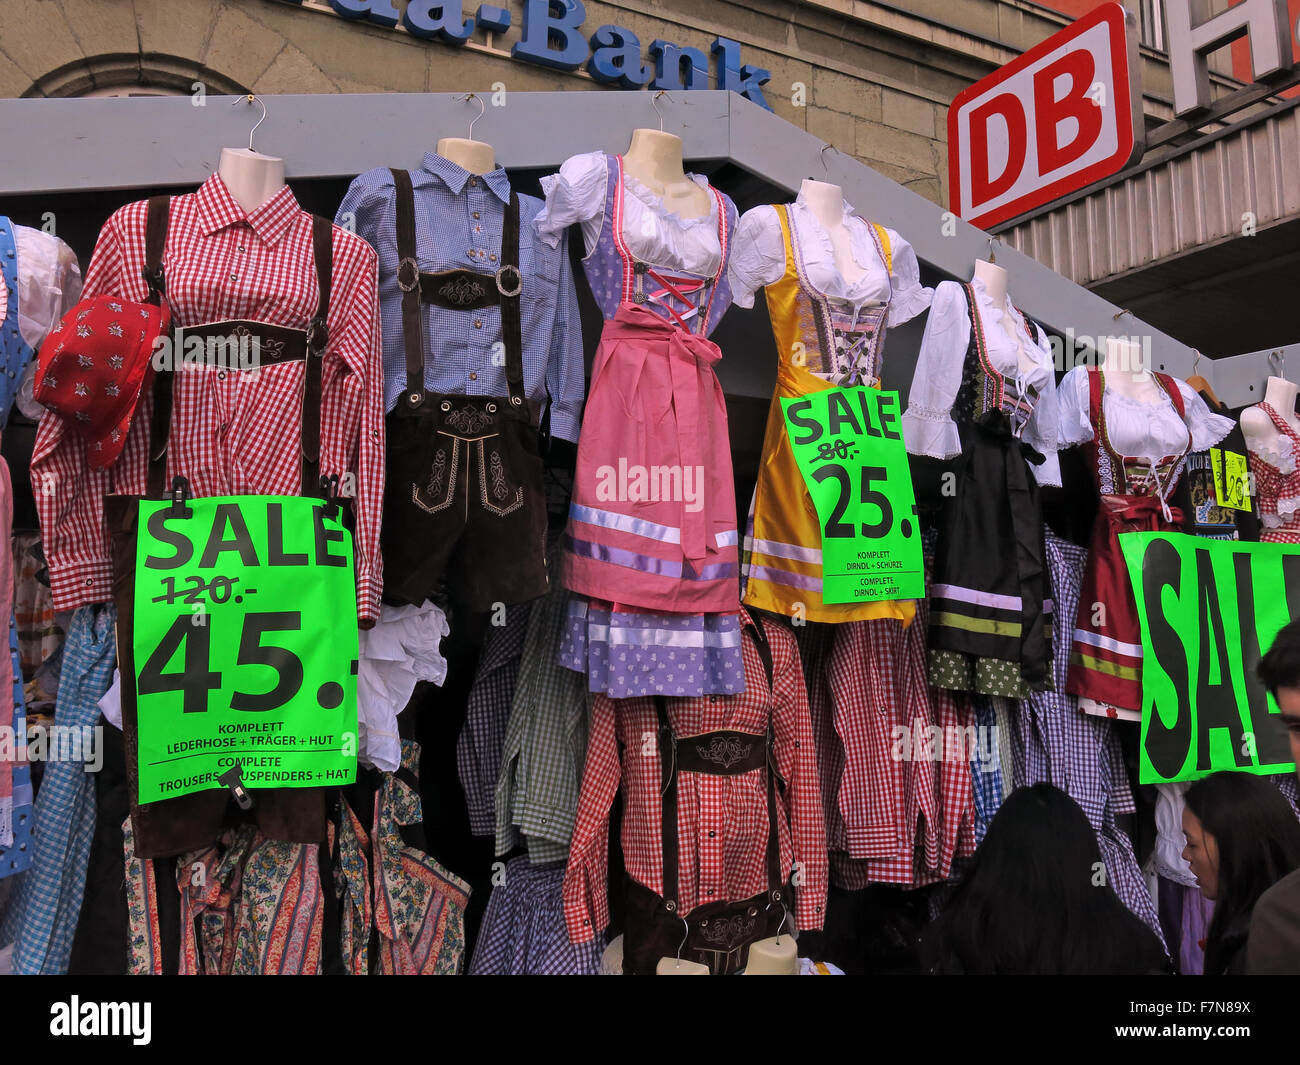 sale,prices,for,sale,reduced,Octoberfest,beer,bier,festival,railway,station,gear,Hbf,central,stall,market,price,prices,Bavarian,lederhosen,hat,tourist,tourists,Dirndl,leather,Bundhosen,Kniebundhosen,traditional,clothing,clothes,Alpine,dress,skirt,mixed,mixture of dress,DB,For Sale,GoTonySmith,Munich,Oktoberfest,in,Germany,Volksfest,beer,festival,and,travelling,funfair,Bavaria,event,Wiesn,fairgrounds,Octoberfest,October,Autumn,Theresienwiese,field,or,meadow,of,Therese,centre,beer,center,bier,roast,pork,chicken,building,buildings,Brezen,pretzels,Knödel,potato,bread,dumplings,Käsespätzle,Reiberdatschi,pancake,Sauerkraut,or,Rotkohl,Blaukraut,ale,Dirndl,Lederhosen,Sennerhut,tent,Buy Pictures of,Buy Images Of,Unity Day,Oktoberfest beer,Beer festival